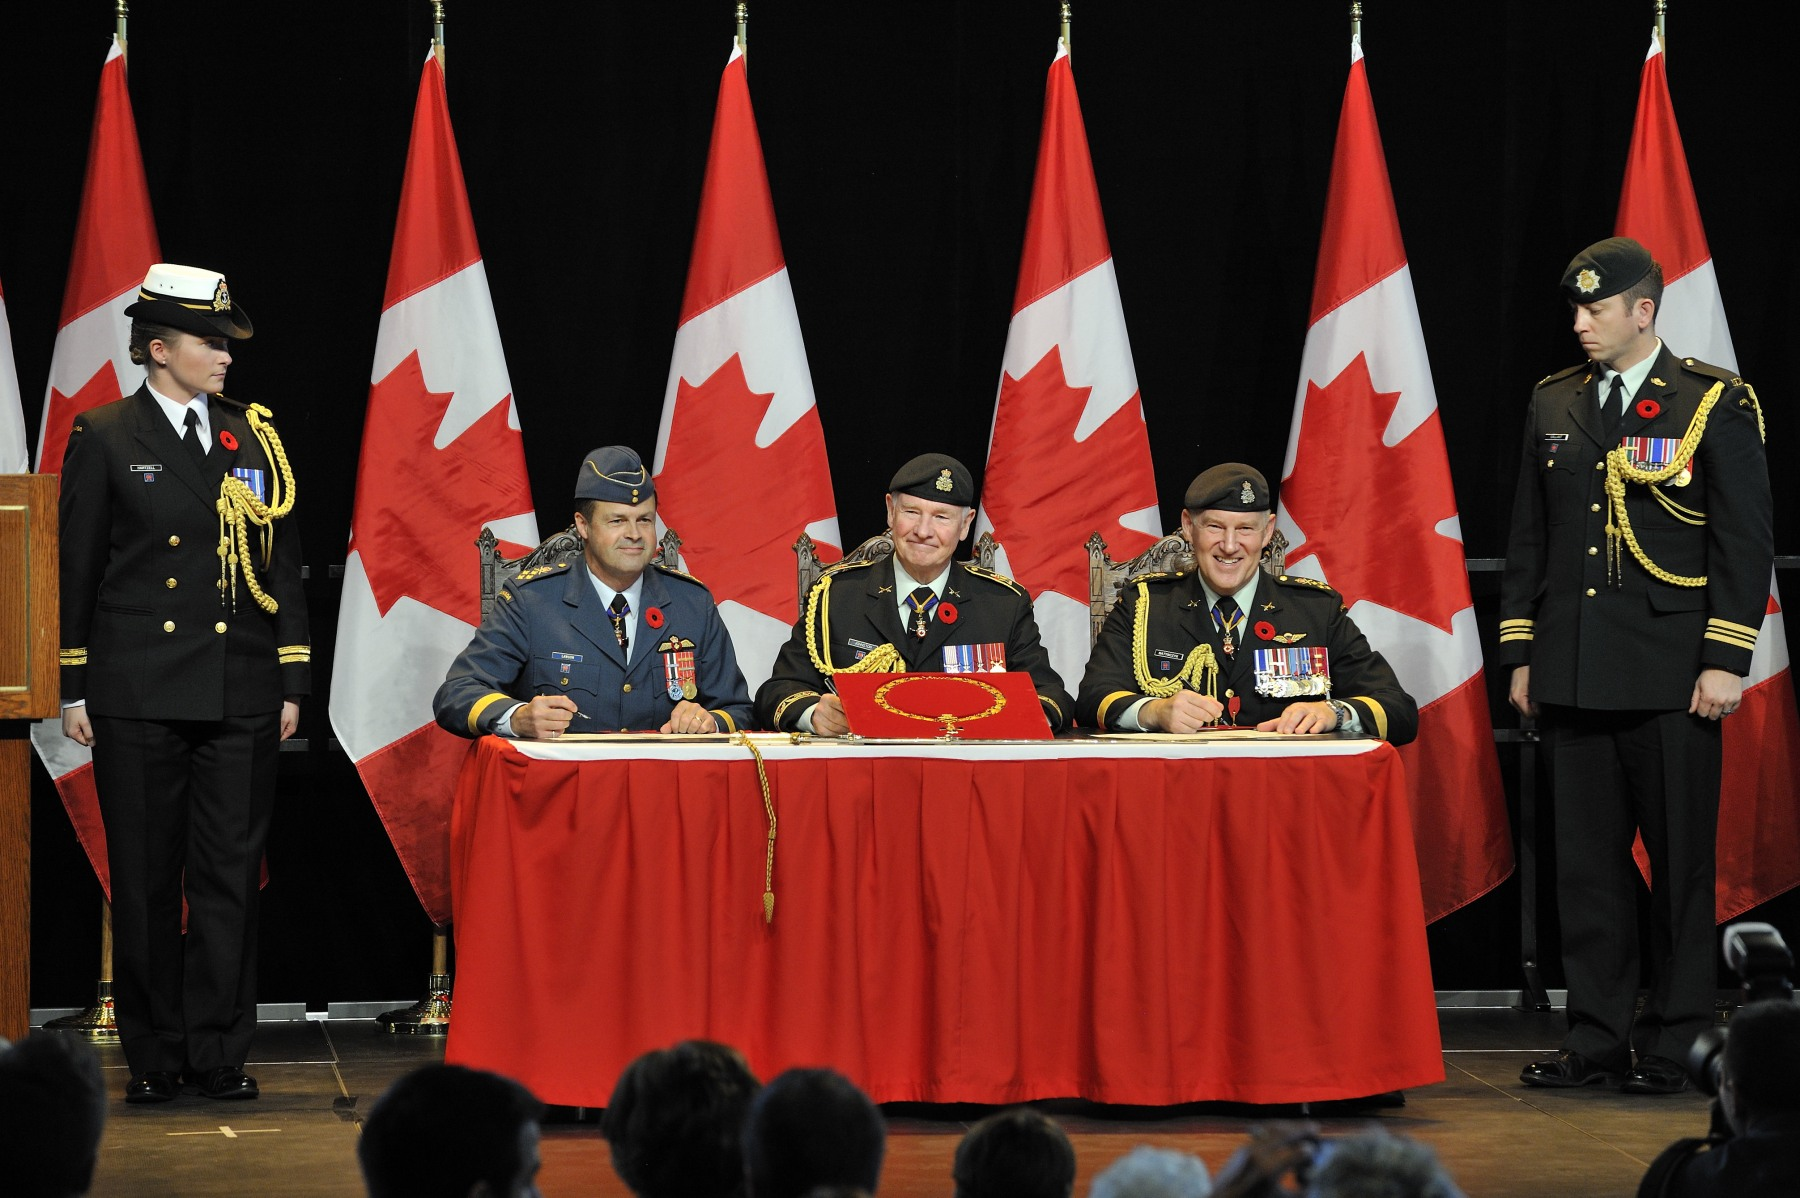 The Governor General, General Lawson and General Natynczyk signed the Change of Appointment Certificat.